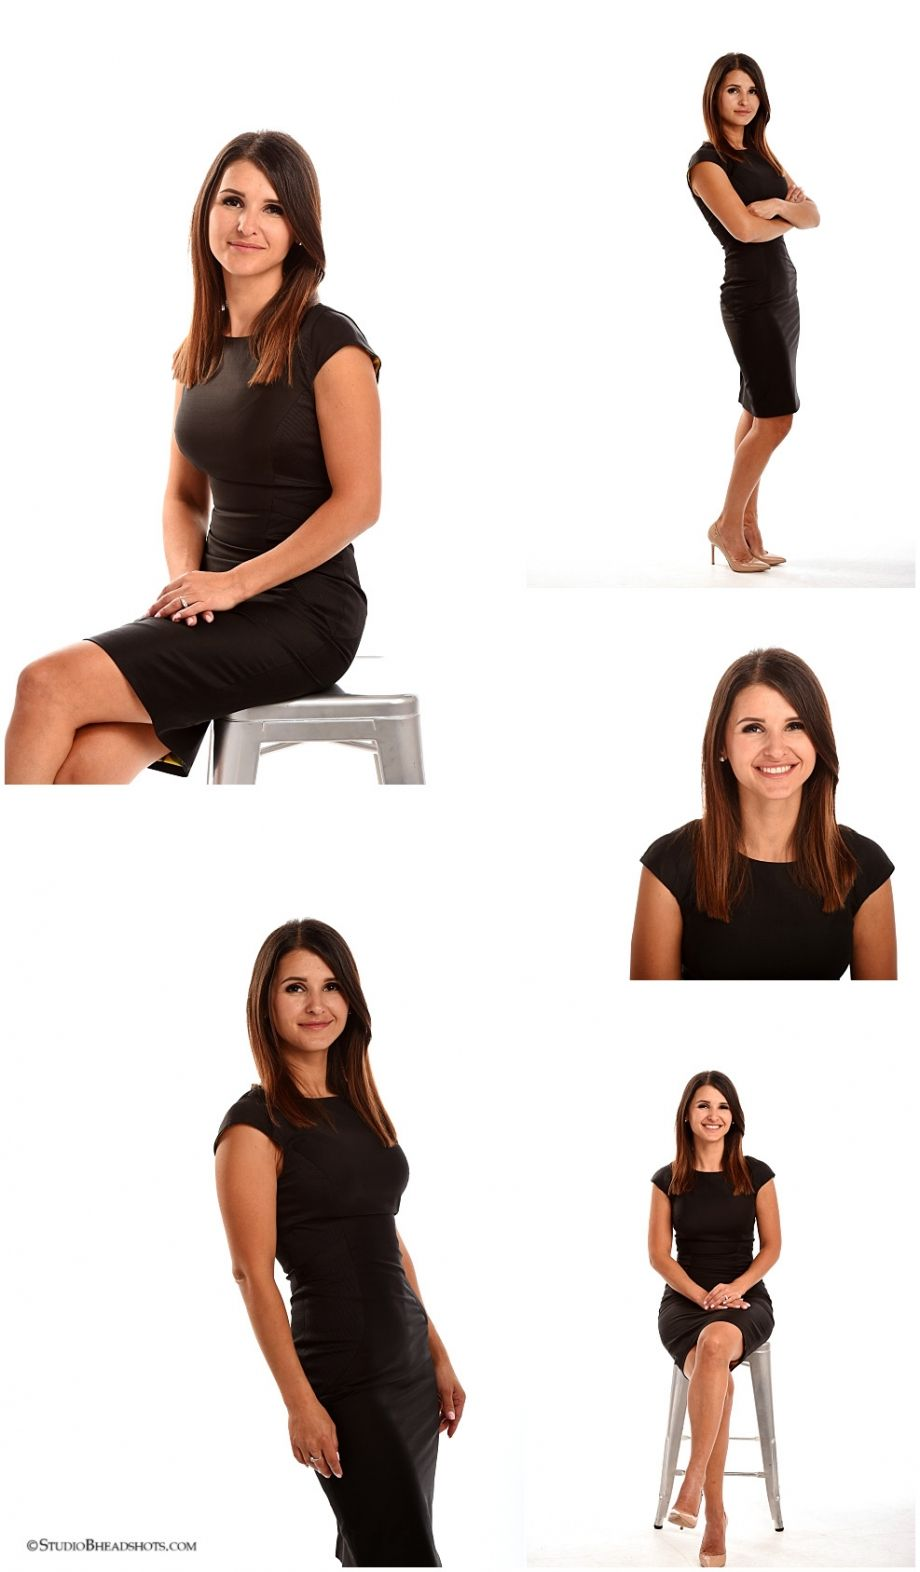 expression and body language examples for business | Fotografia ...